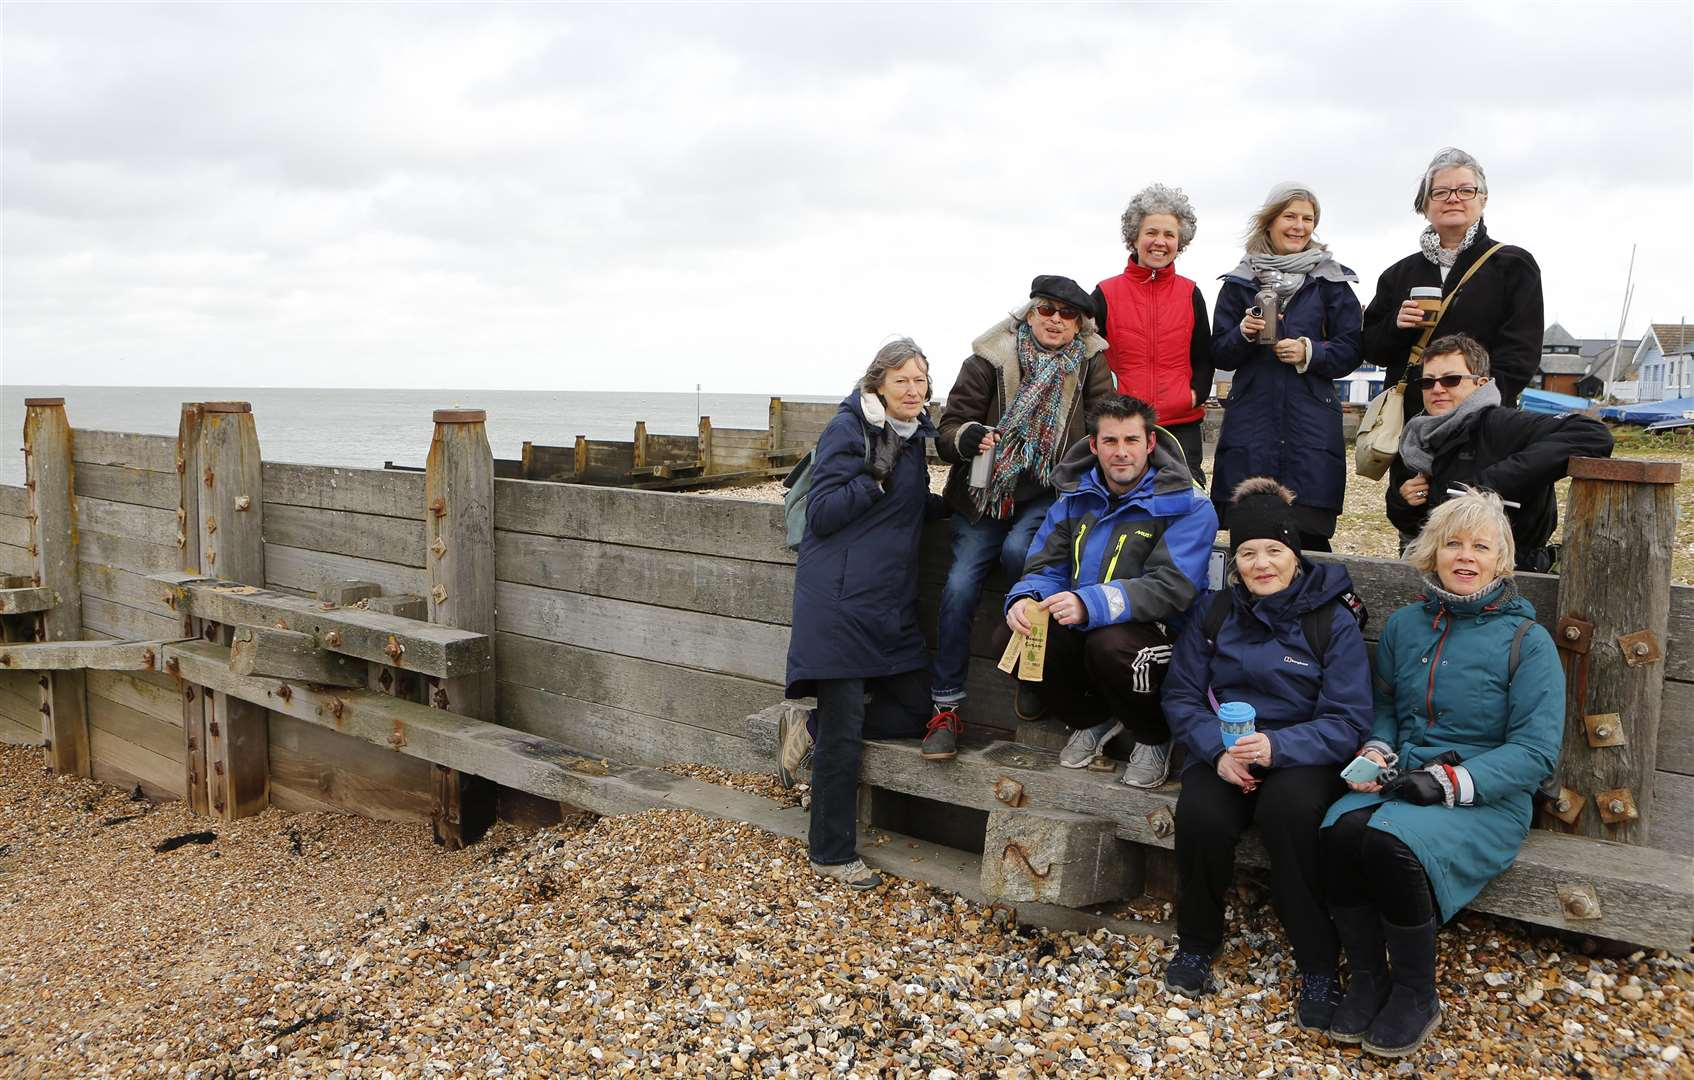 The Plastic Free Whitstable group launched in January 2018